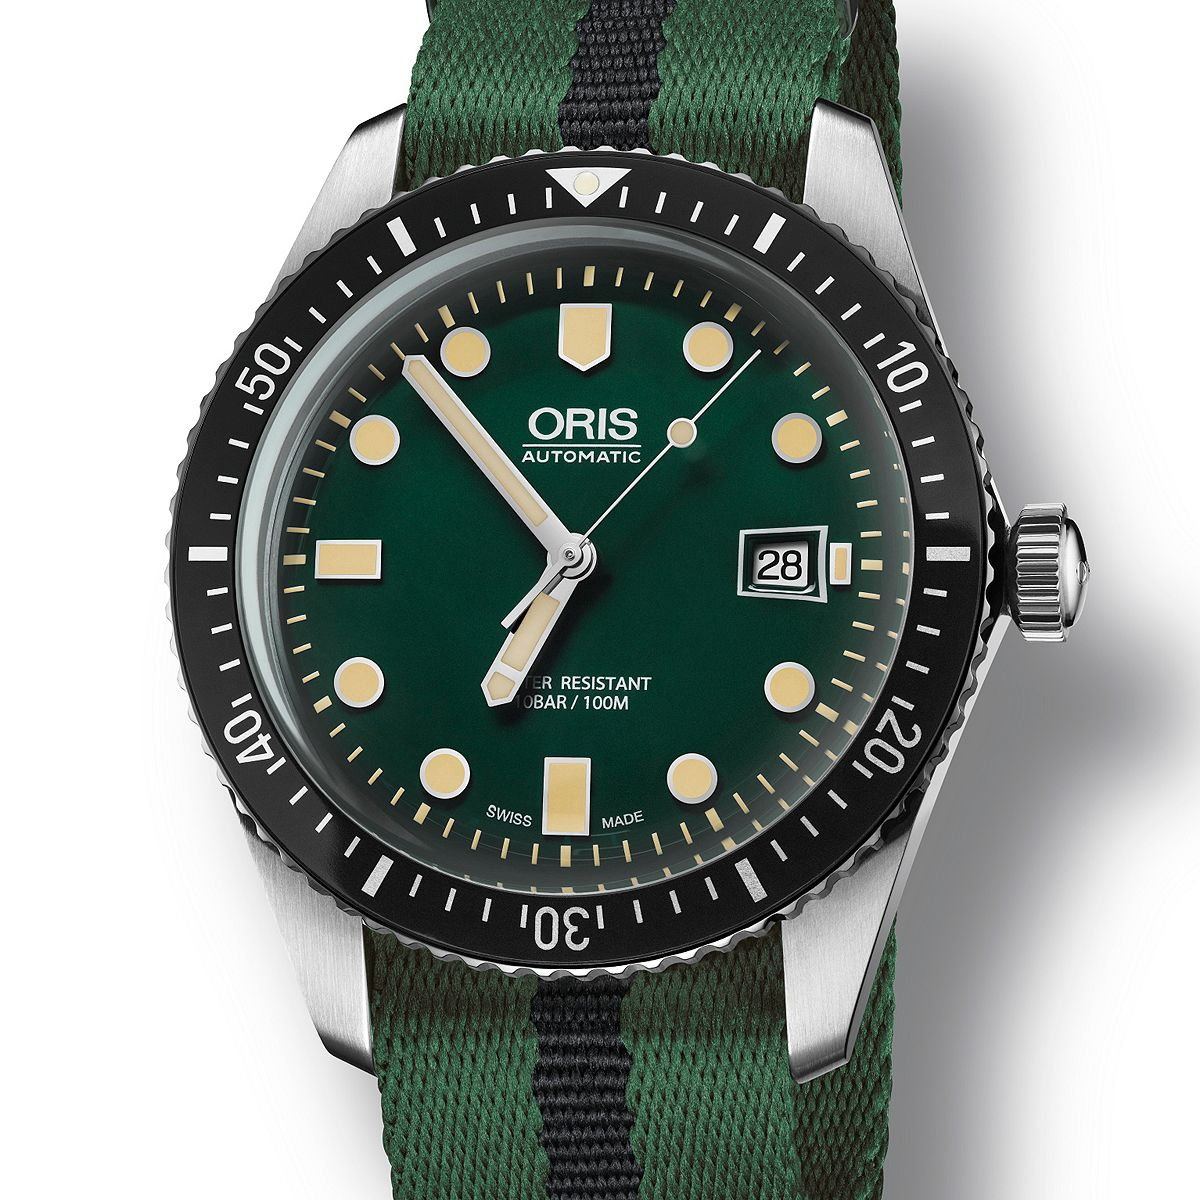 St. Patrick's Day is celebrated all over the world, by people of all ages, whether of Irish ancestry or not, many of whom wear green in honor of the holiday. Over the last several years, luxury watch brands have started to embrace green as a featured color on watch dials and straps. Here, we ta